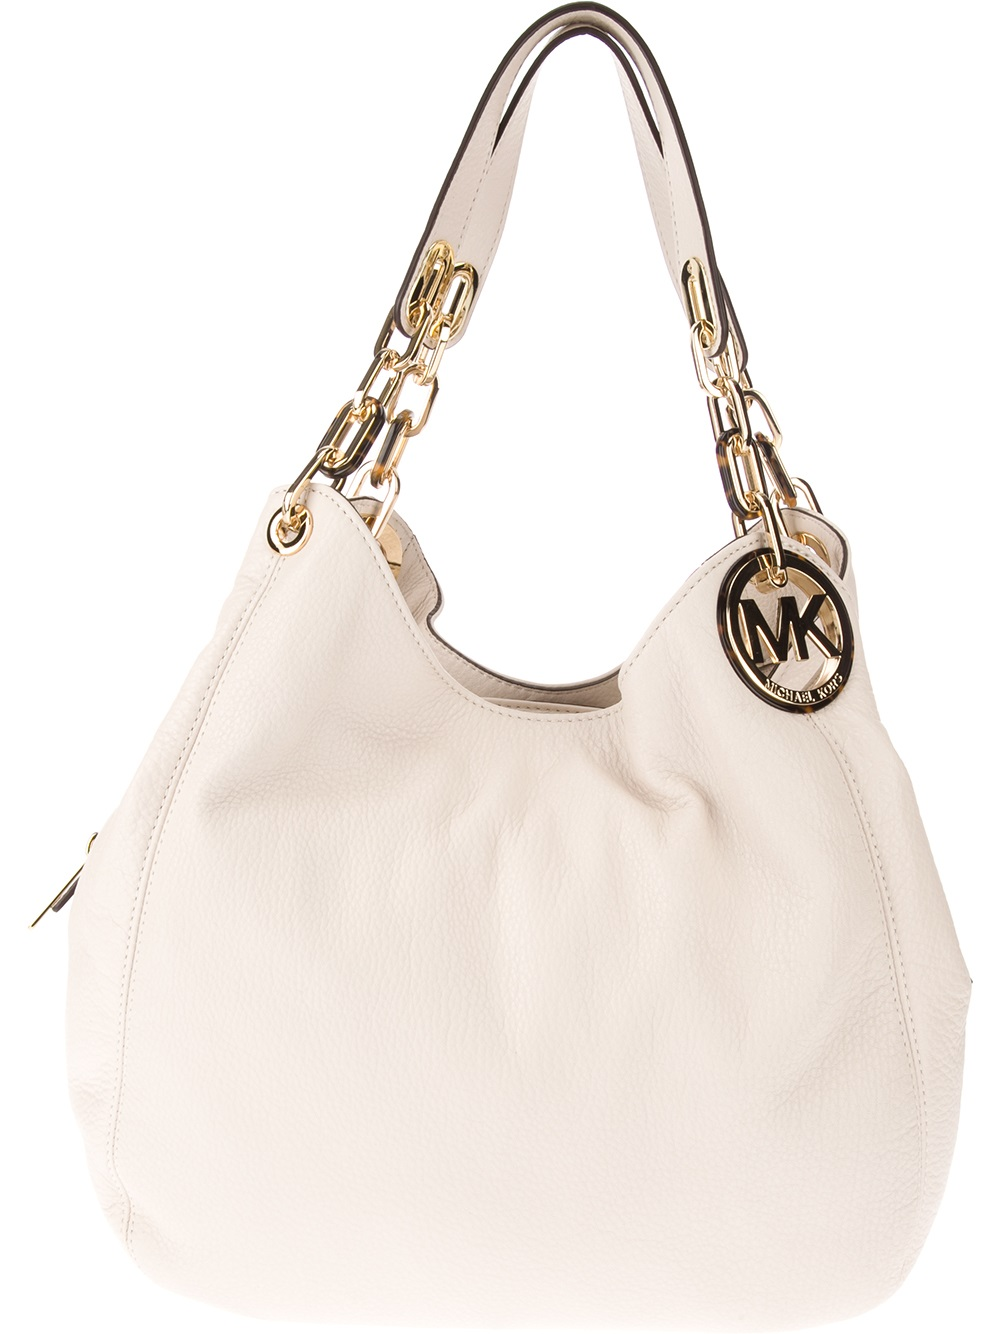 c7bb7fddc884 ... netherlands lyst michael kors slouch tote bag in white b81ad 2cc89